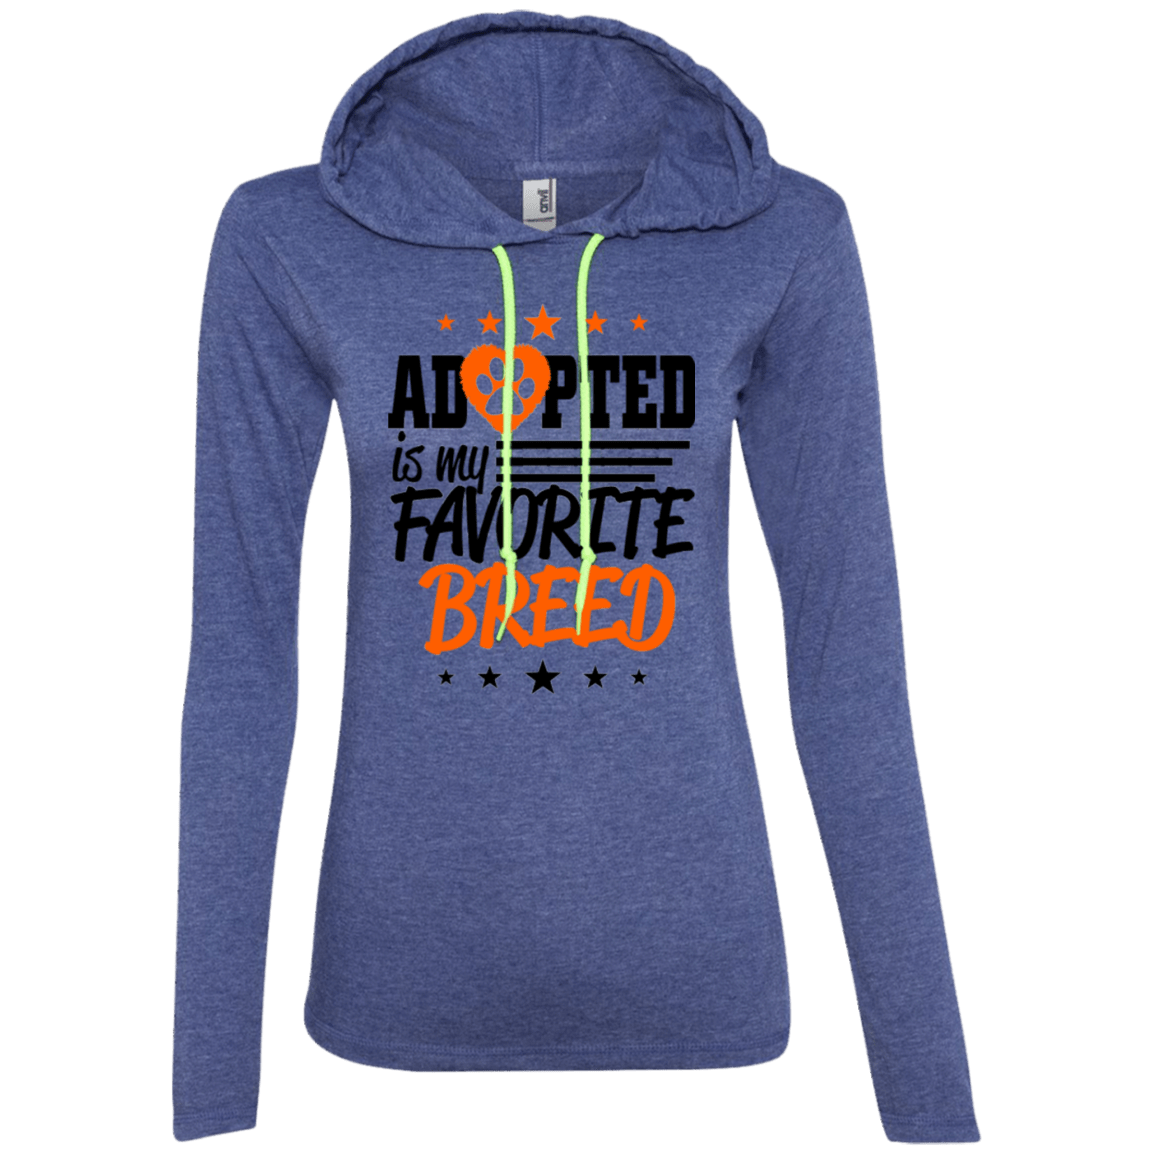 Adopted is My Favorite Breed - 887L Anvil Ladies' LS T-Shirt Hoodie Heather Blue/Neon Yellow Small - Little Pit Shop